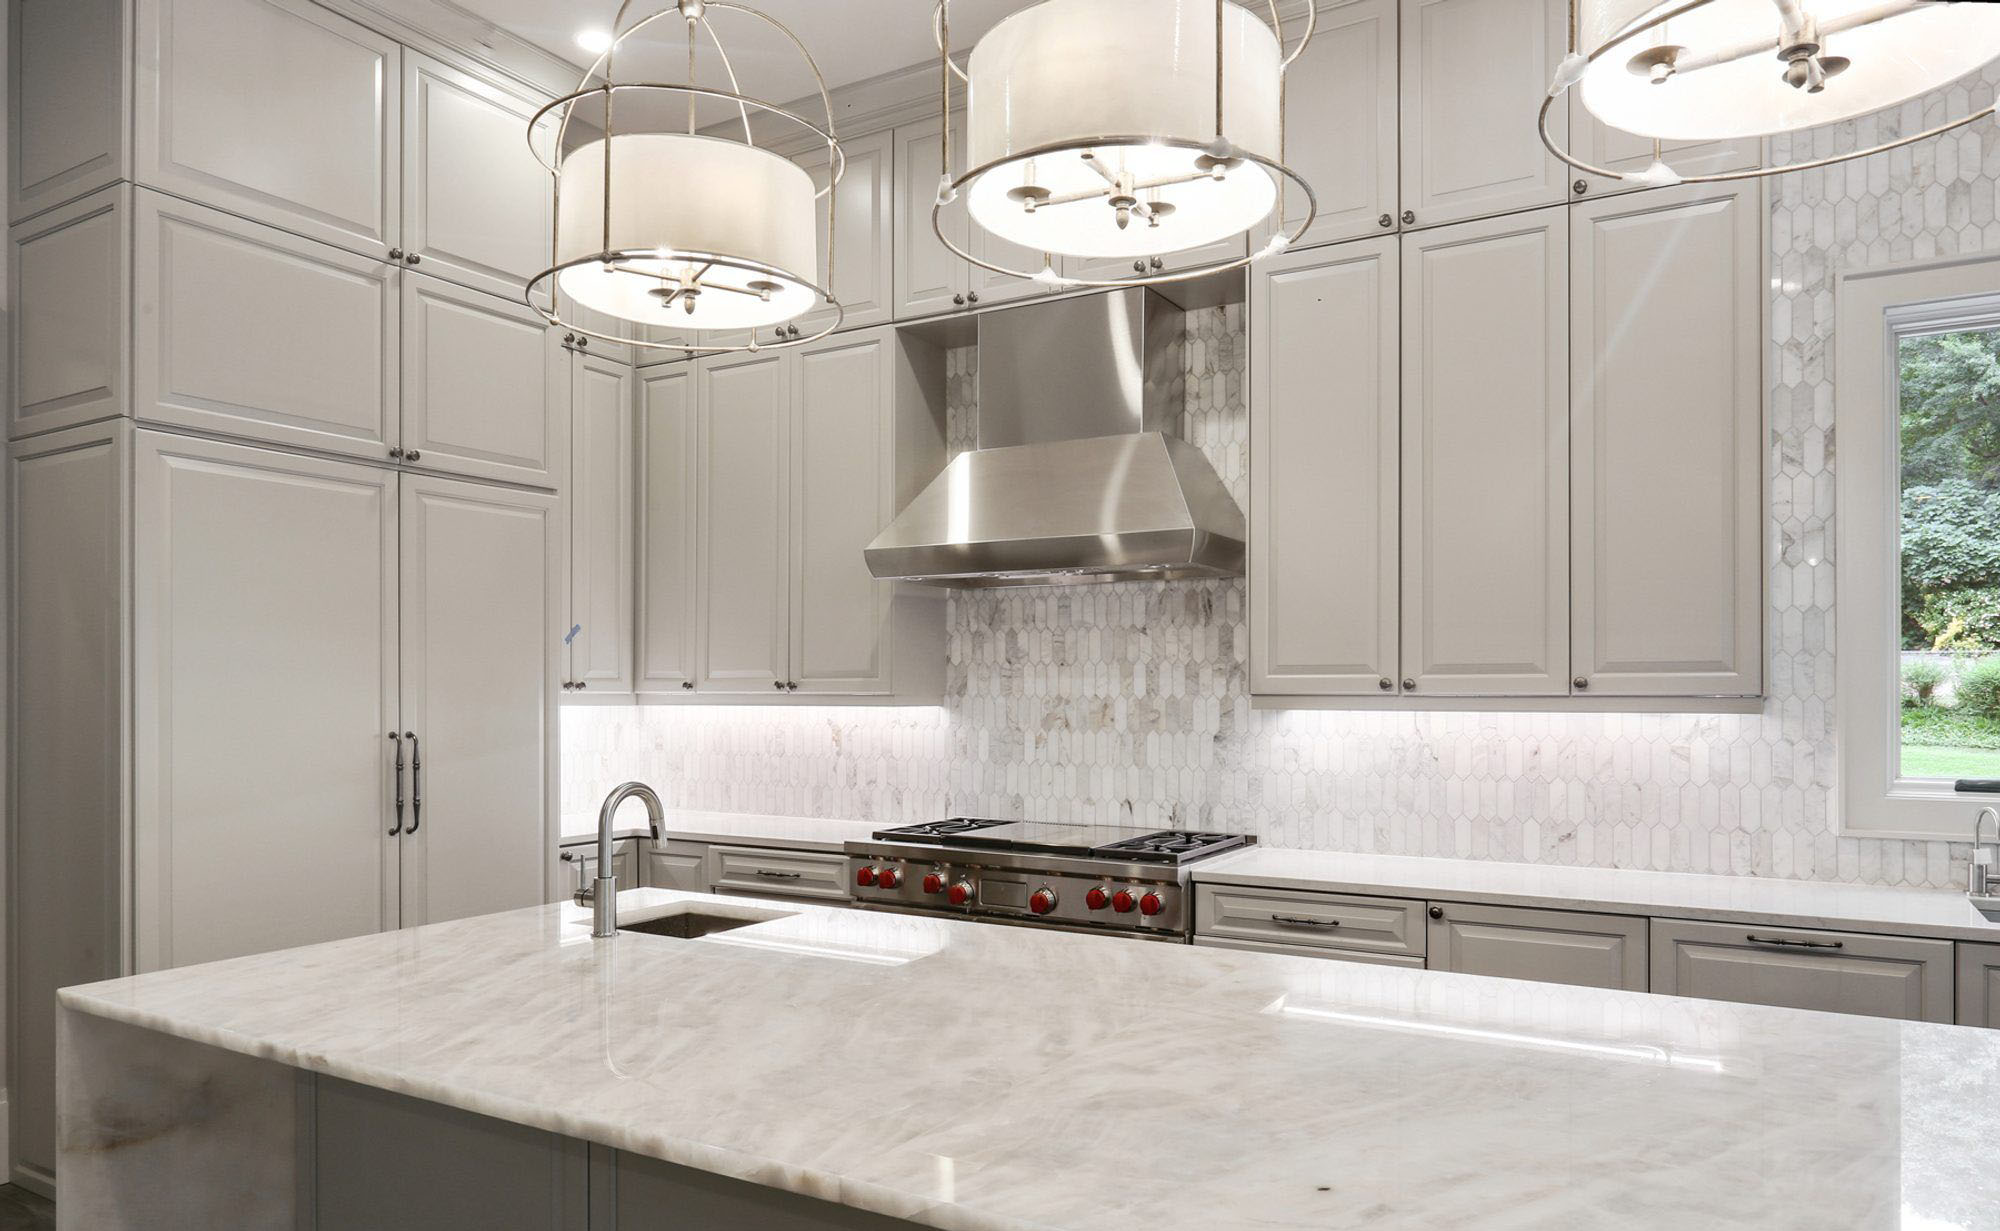 Gray kitchen using marble tile backsplash and countertop, soft gray cabinets, stainless steel appliances and light gray grout.